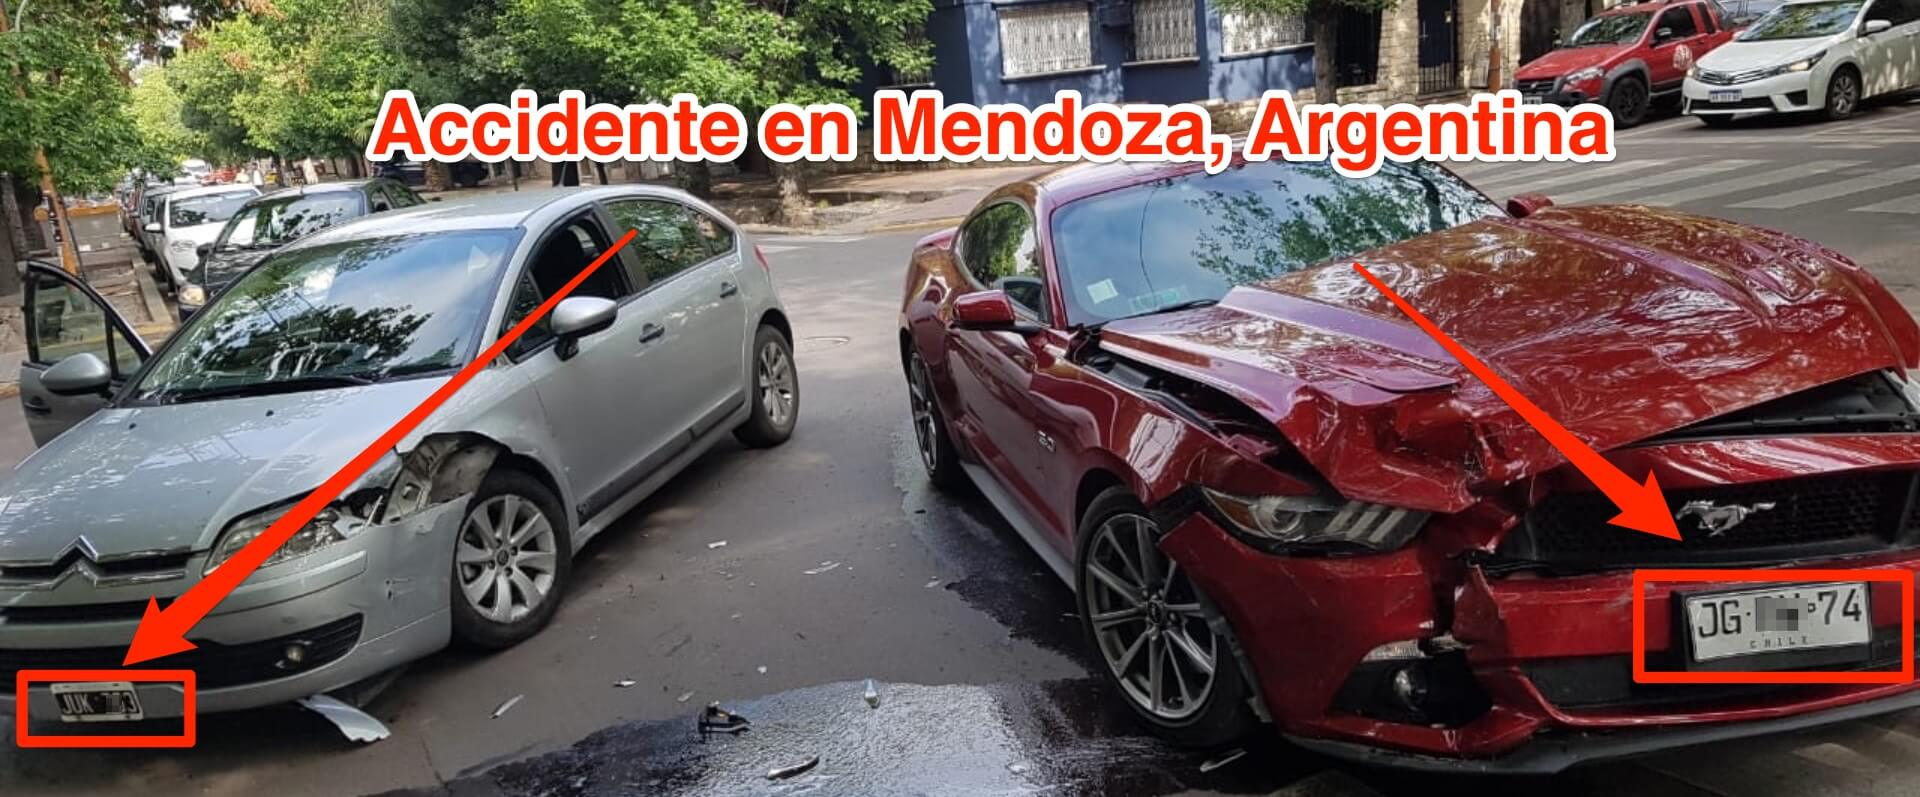 Accidente autos en Mendoza